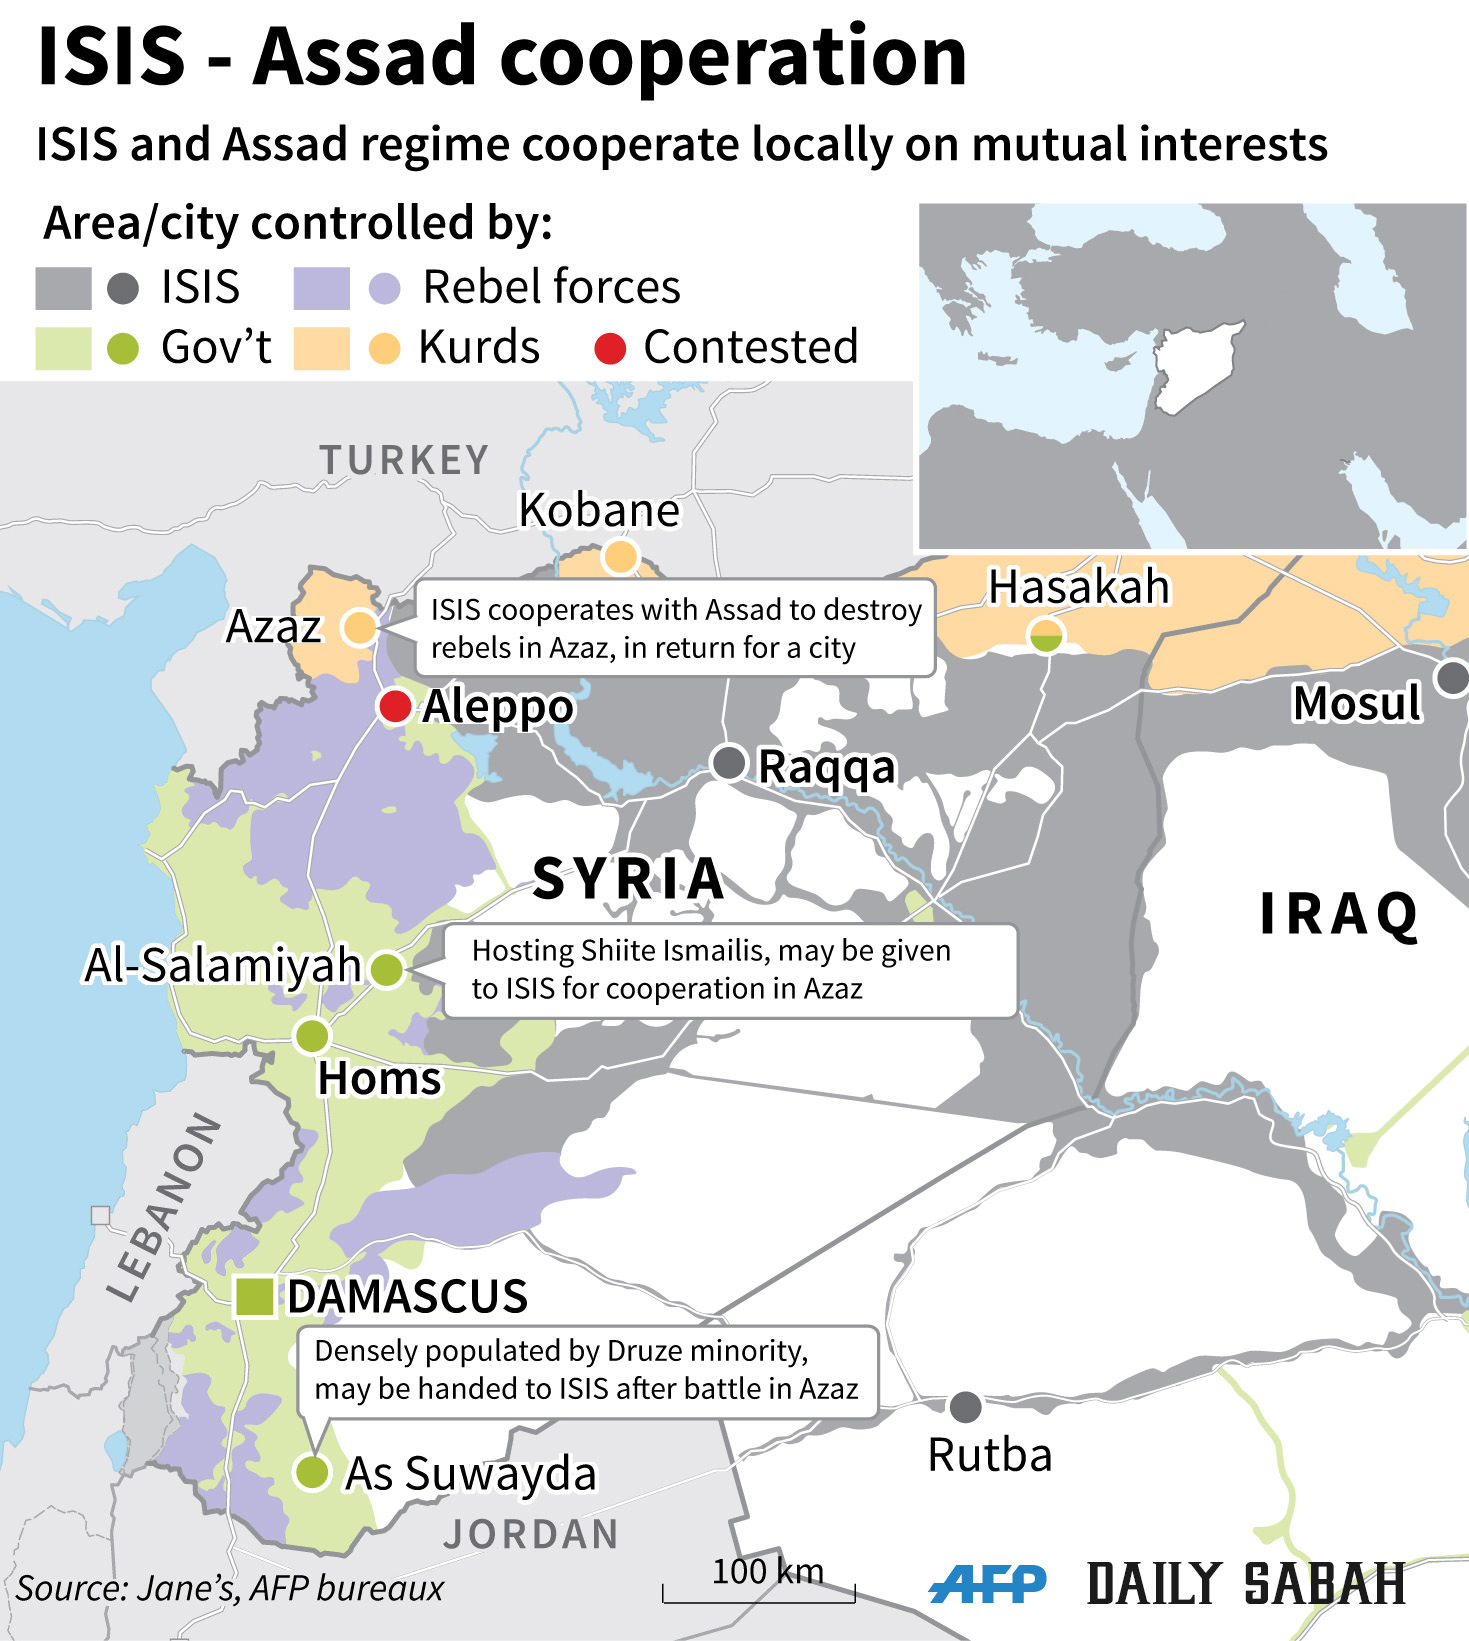 ISIS and Assad cooperate locally on mutual interests to destroy FSA